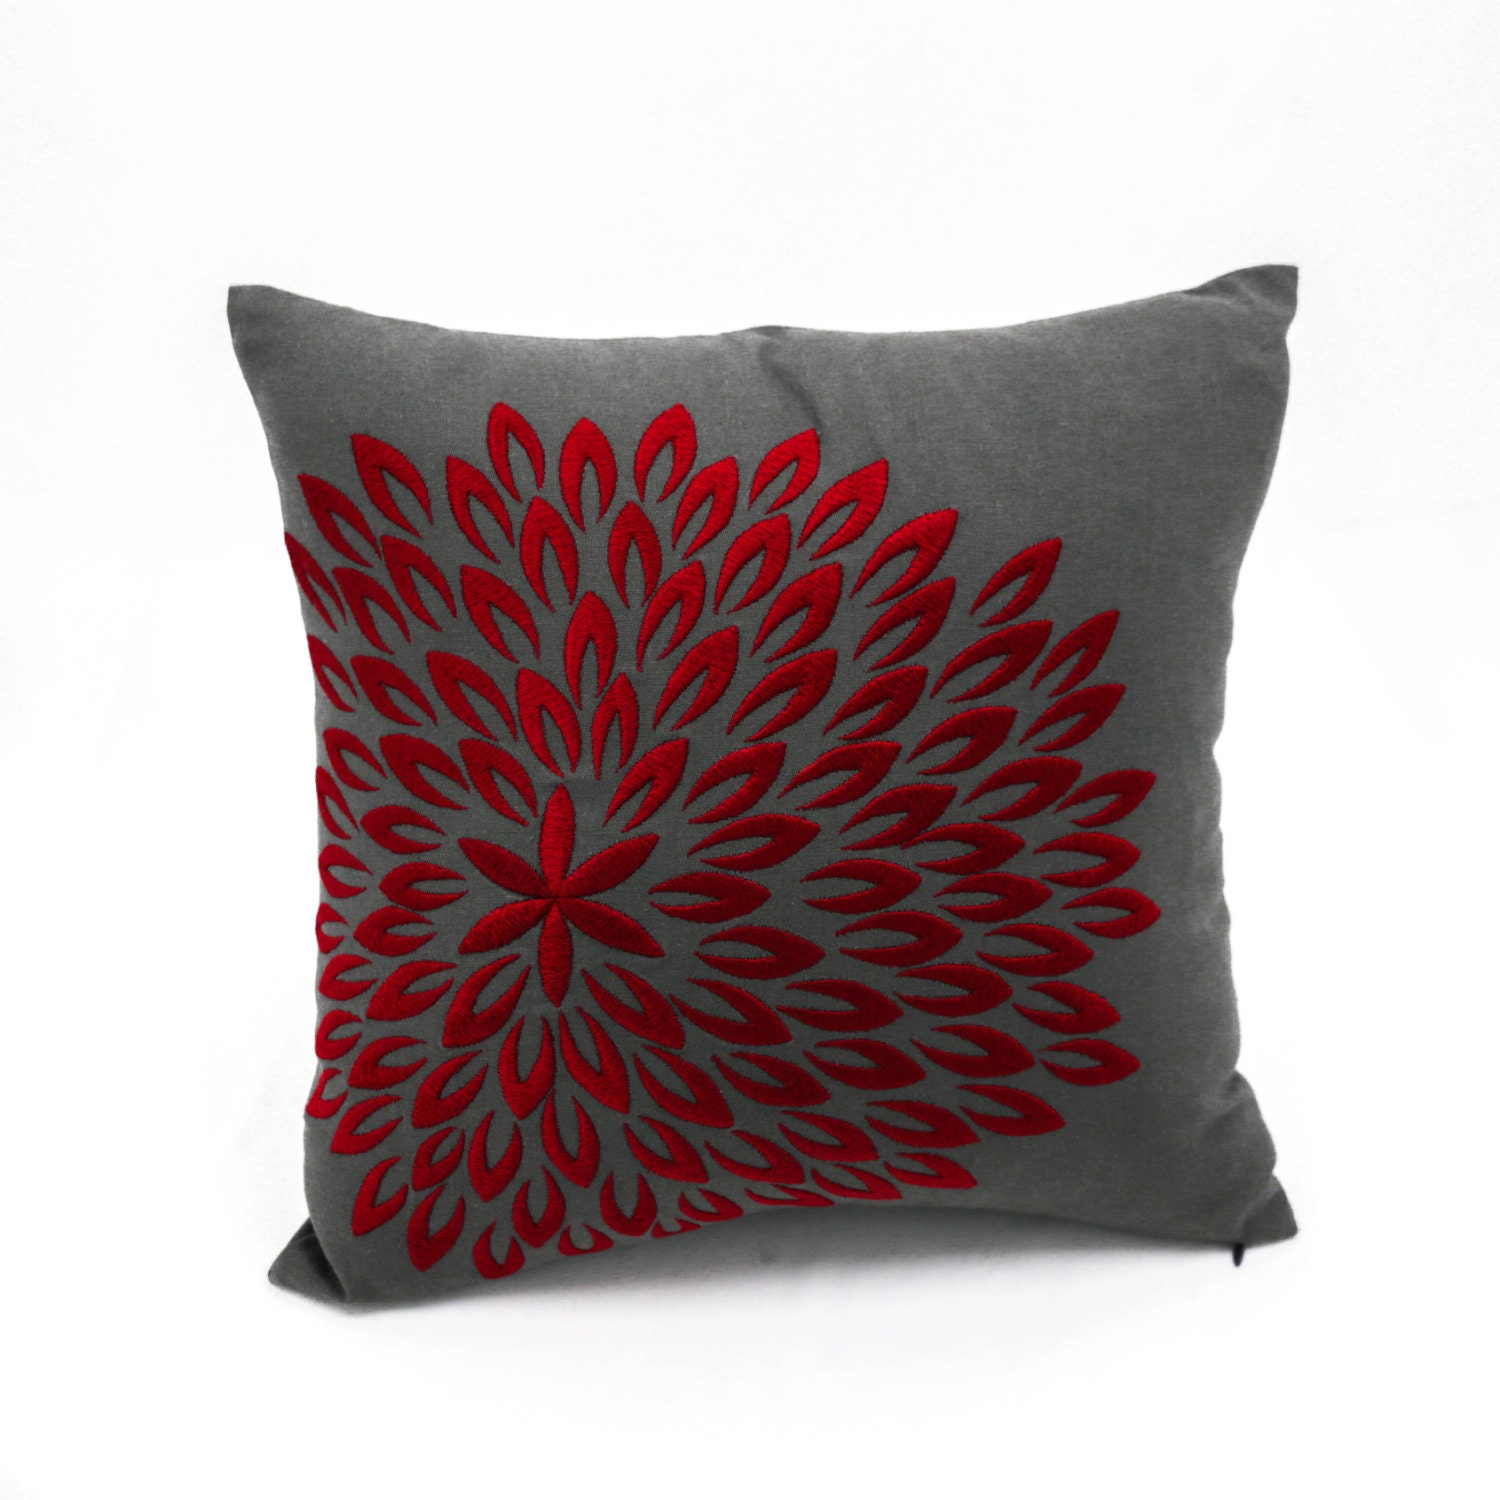 Red Floral Decorative Throw Pillow Cover Dark Grey Linen Red